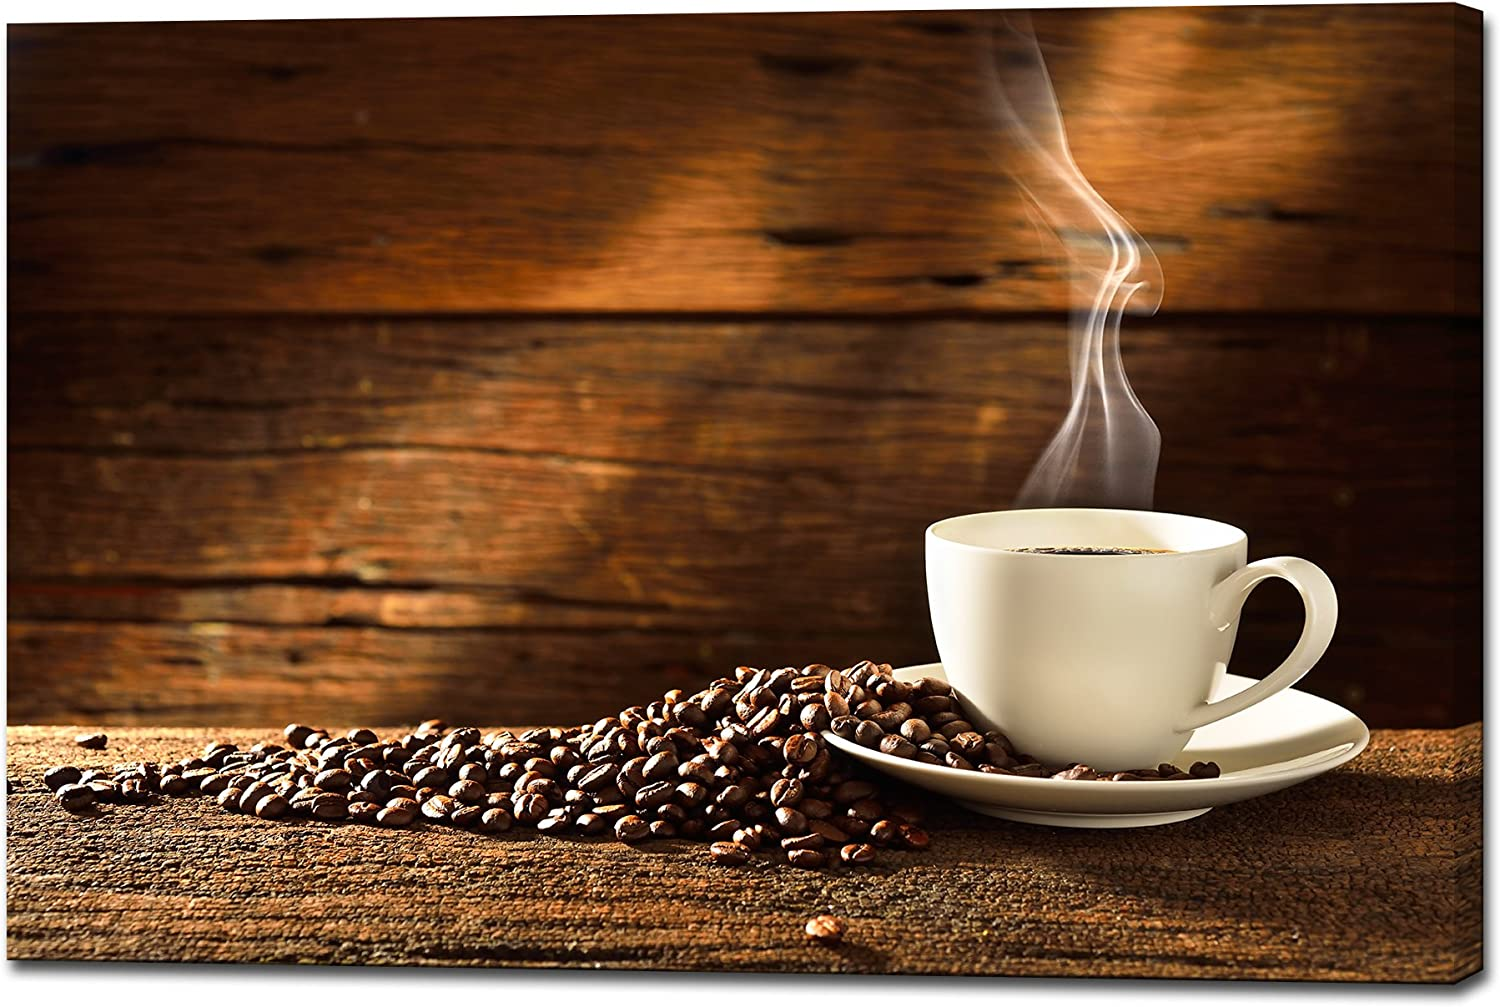 Amazon Com Wall26 Canvas Wall Art Coffee Cup And Coffee Beans On Old Wooden Background Giclee Print Gallery Wrap Modern Home Art Ready To Hang 24 X 36 Posters Prints